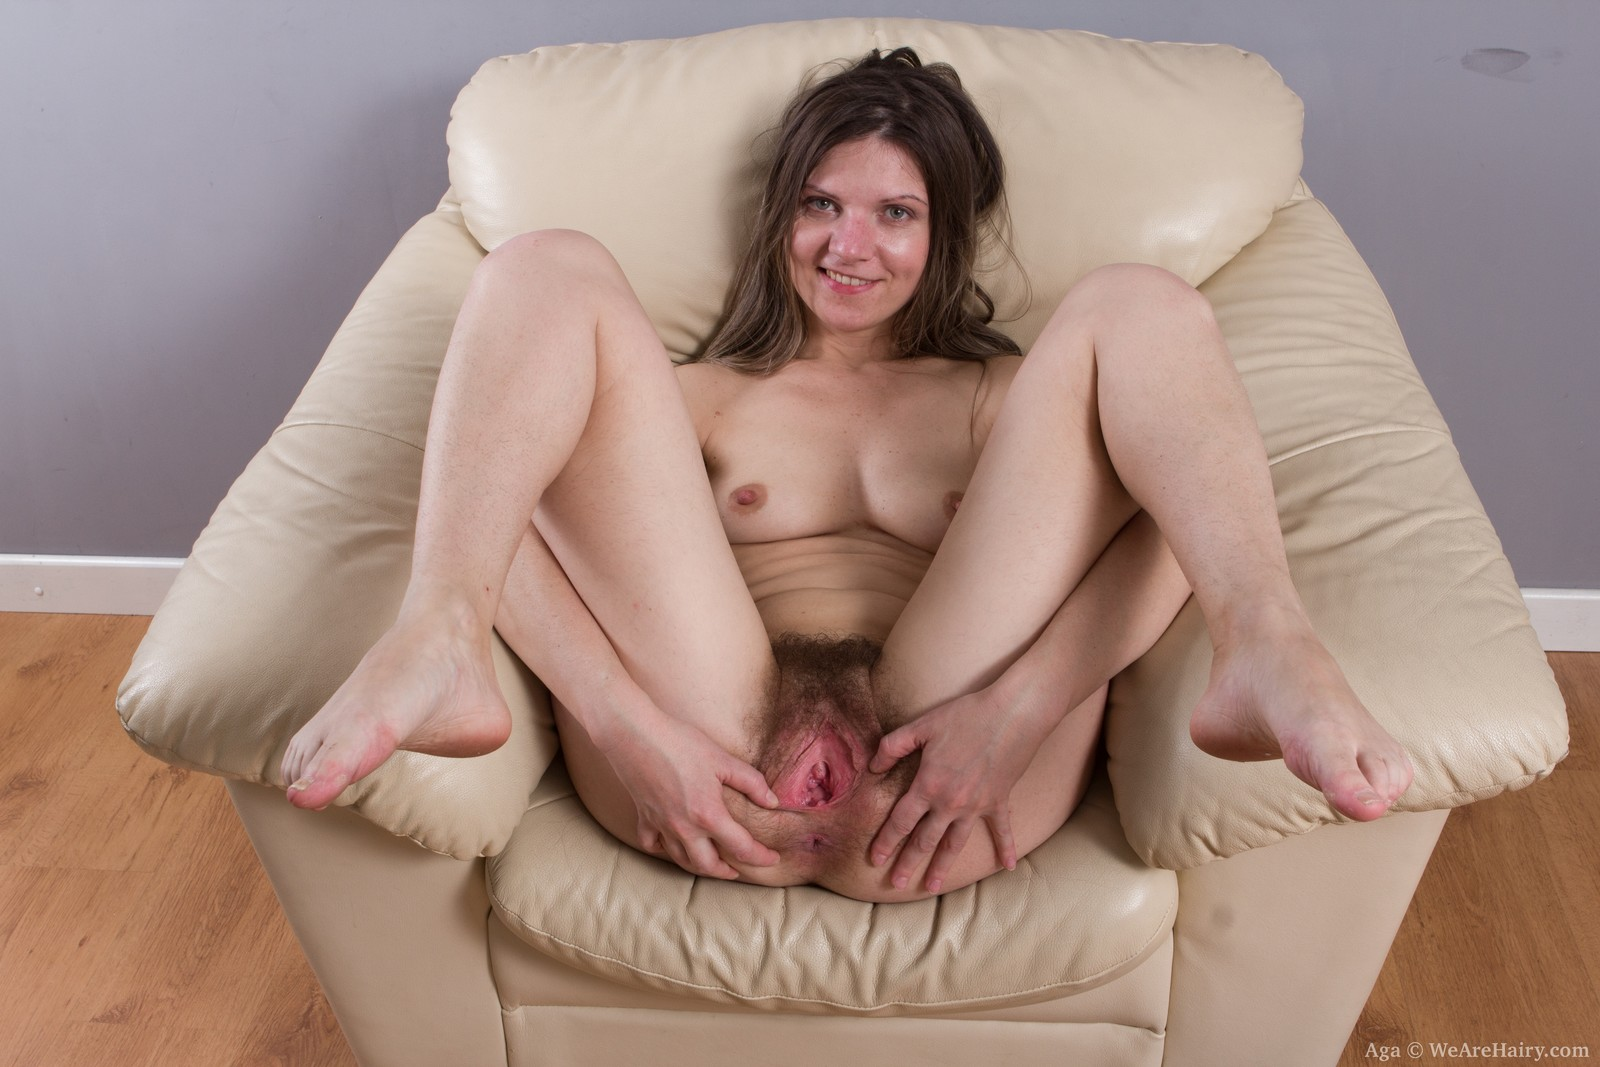 hairy xxx vagina open Girls